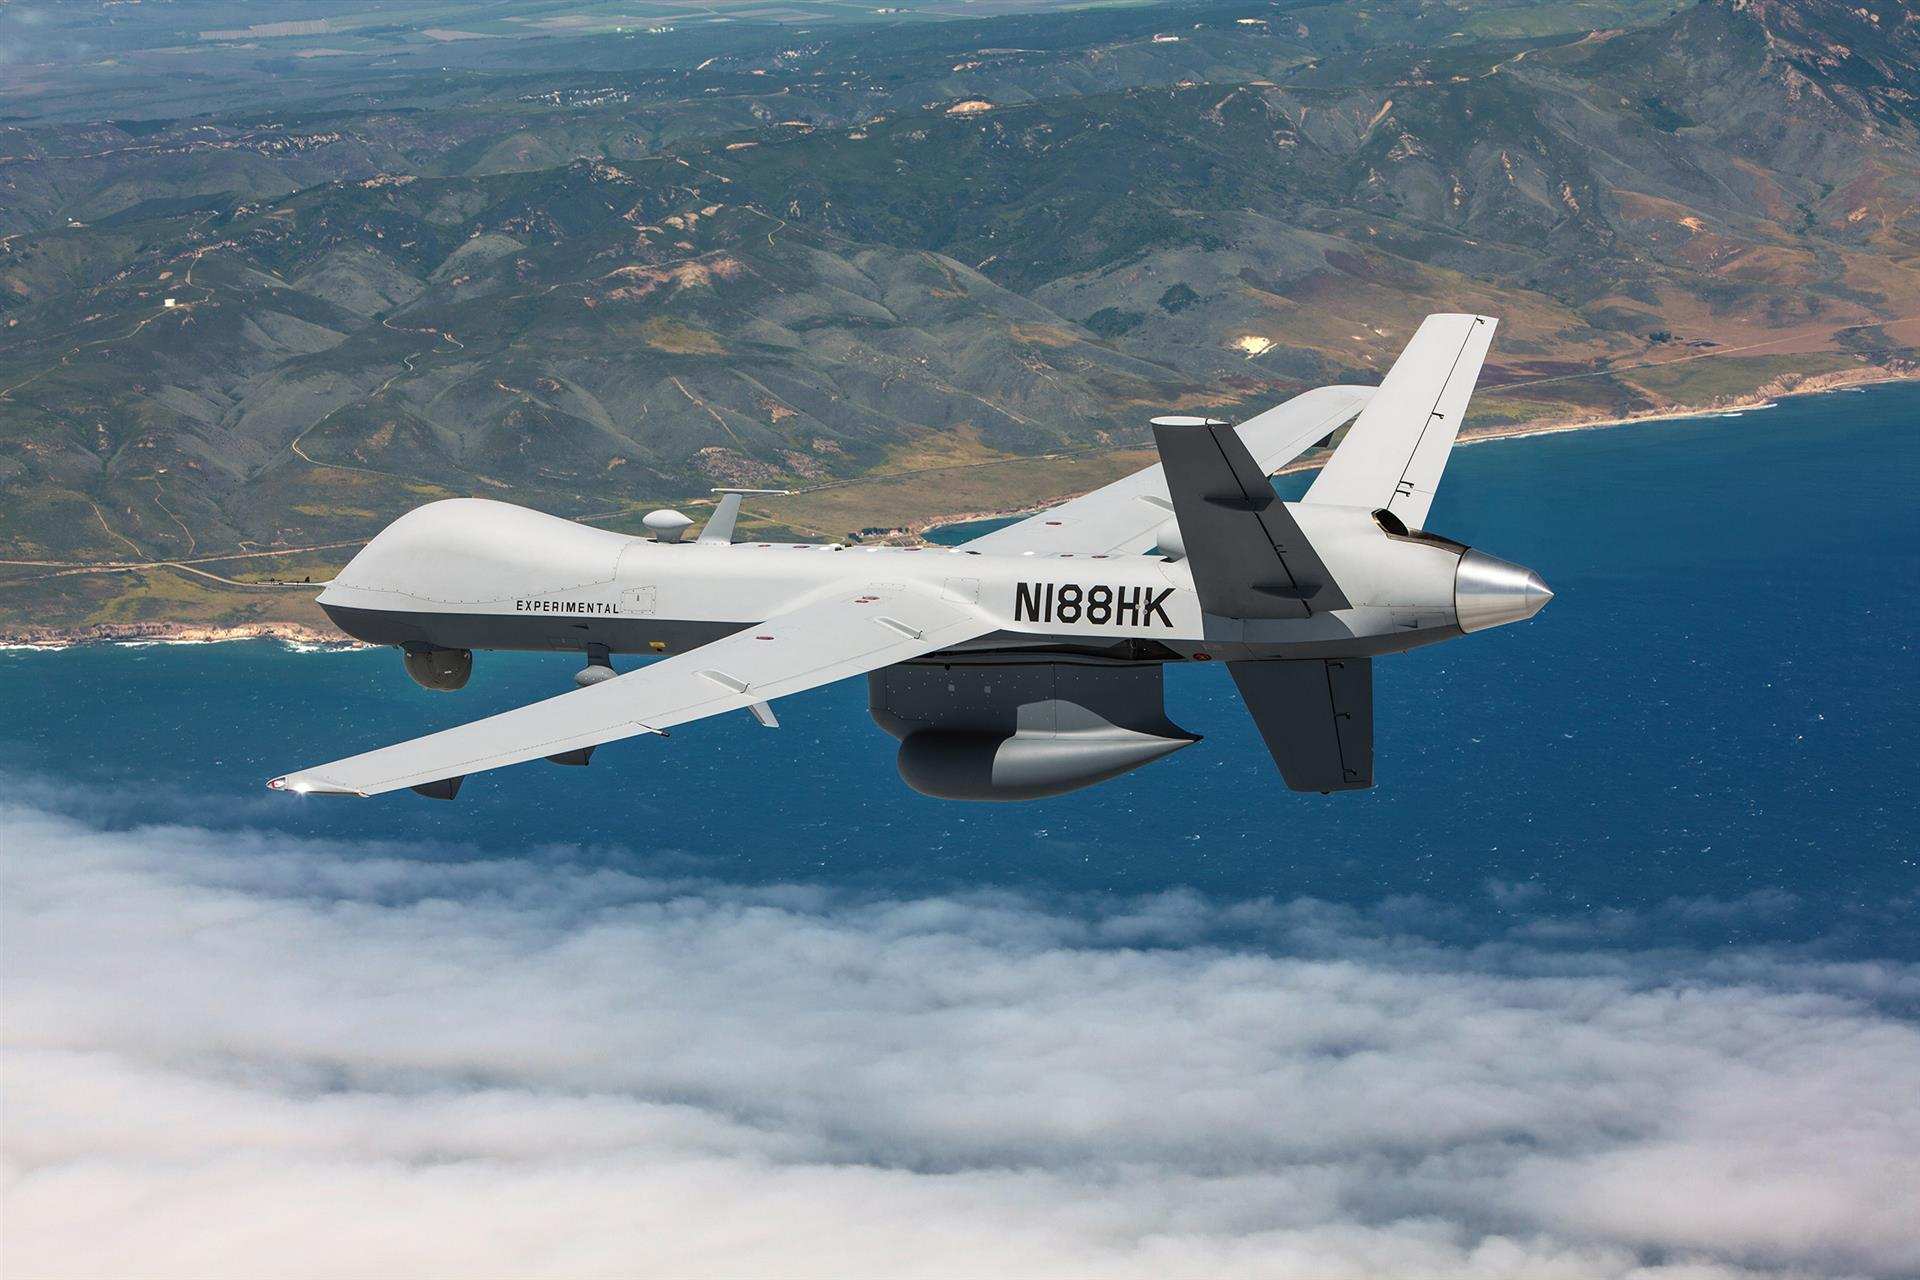 MQ-9B drone sale for India to be OK'd